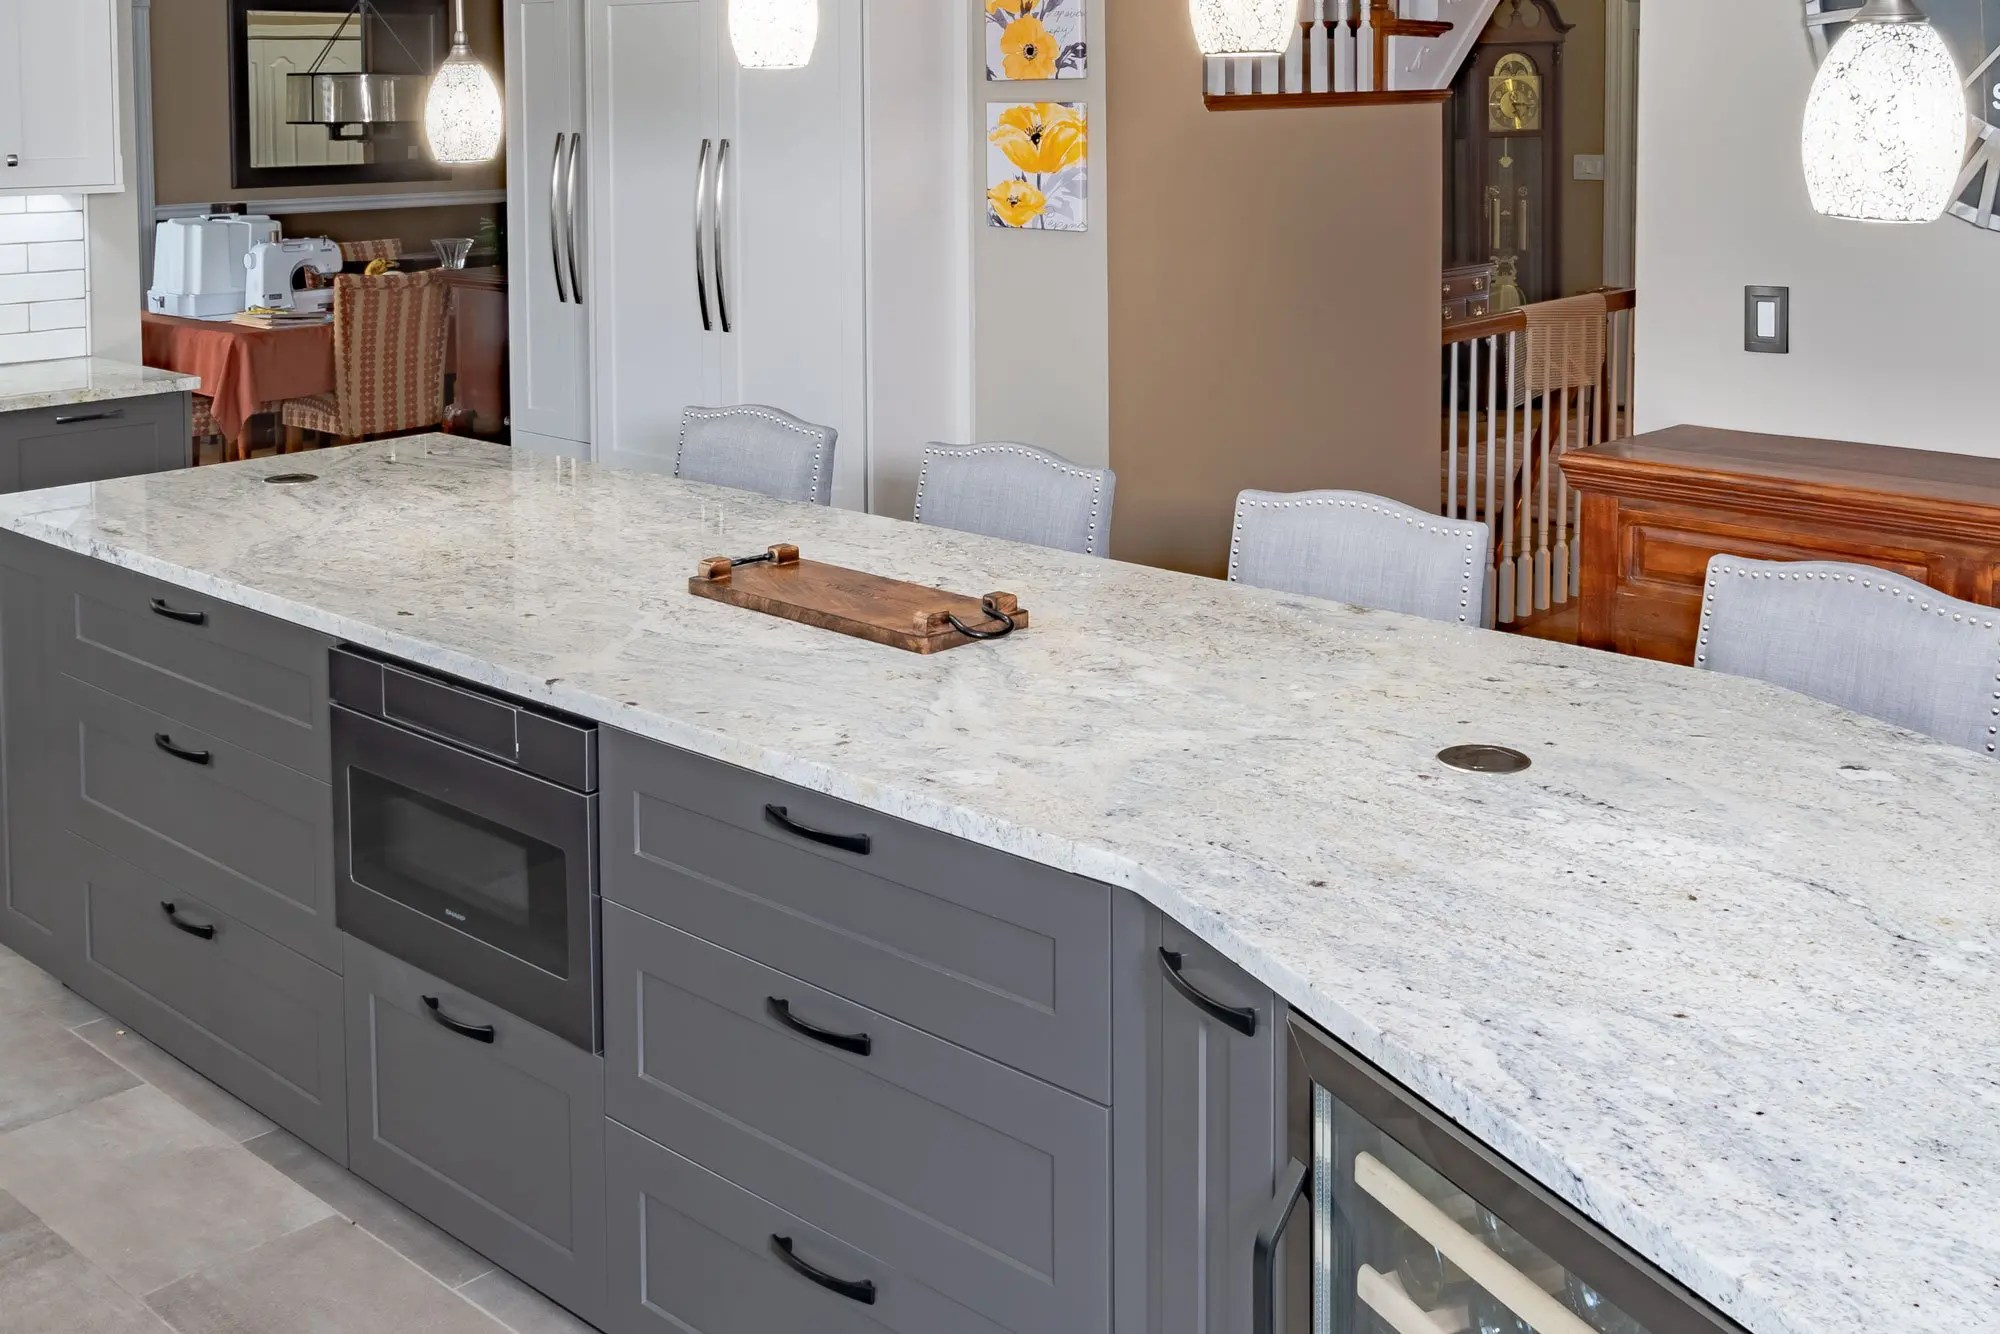 Kitchen Bathroom Countertop Gallery Empiregmq Buffalo Ny